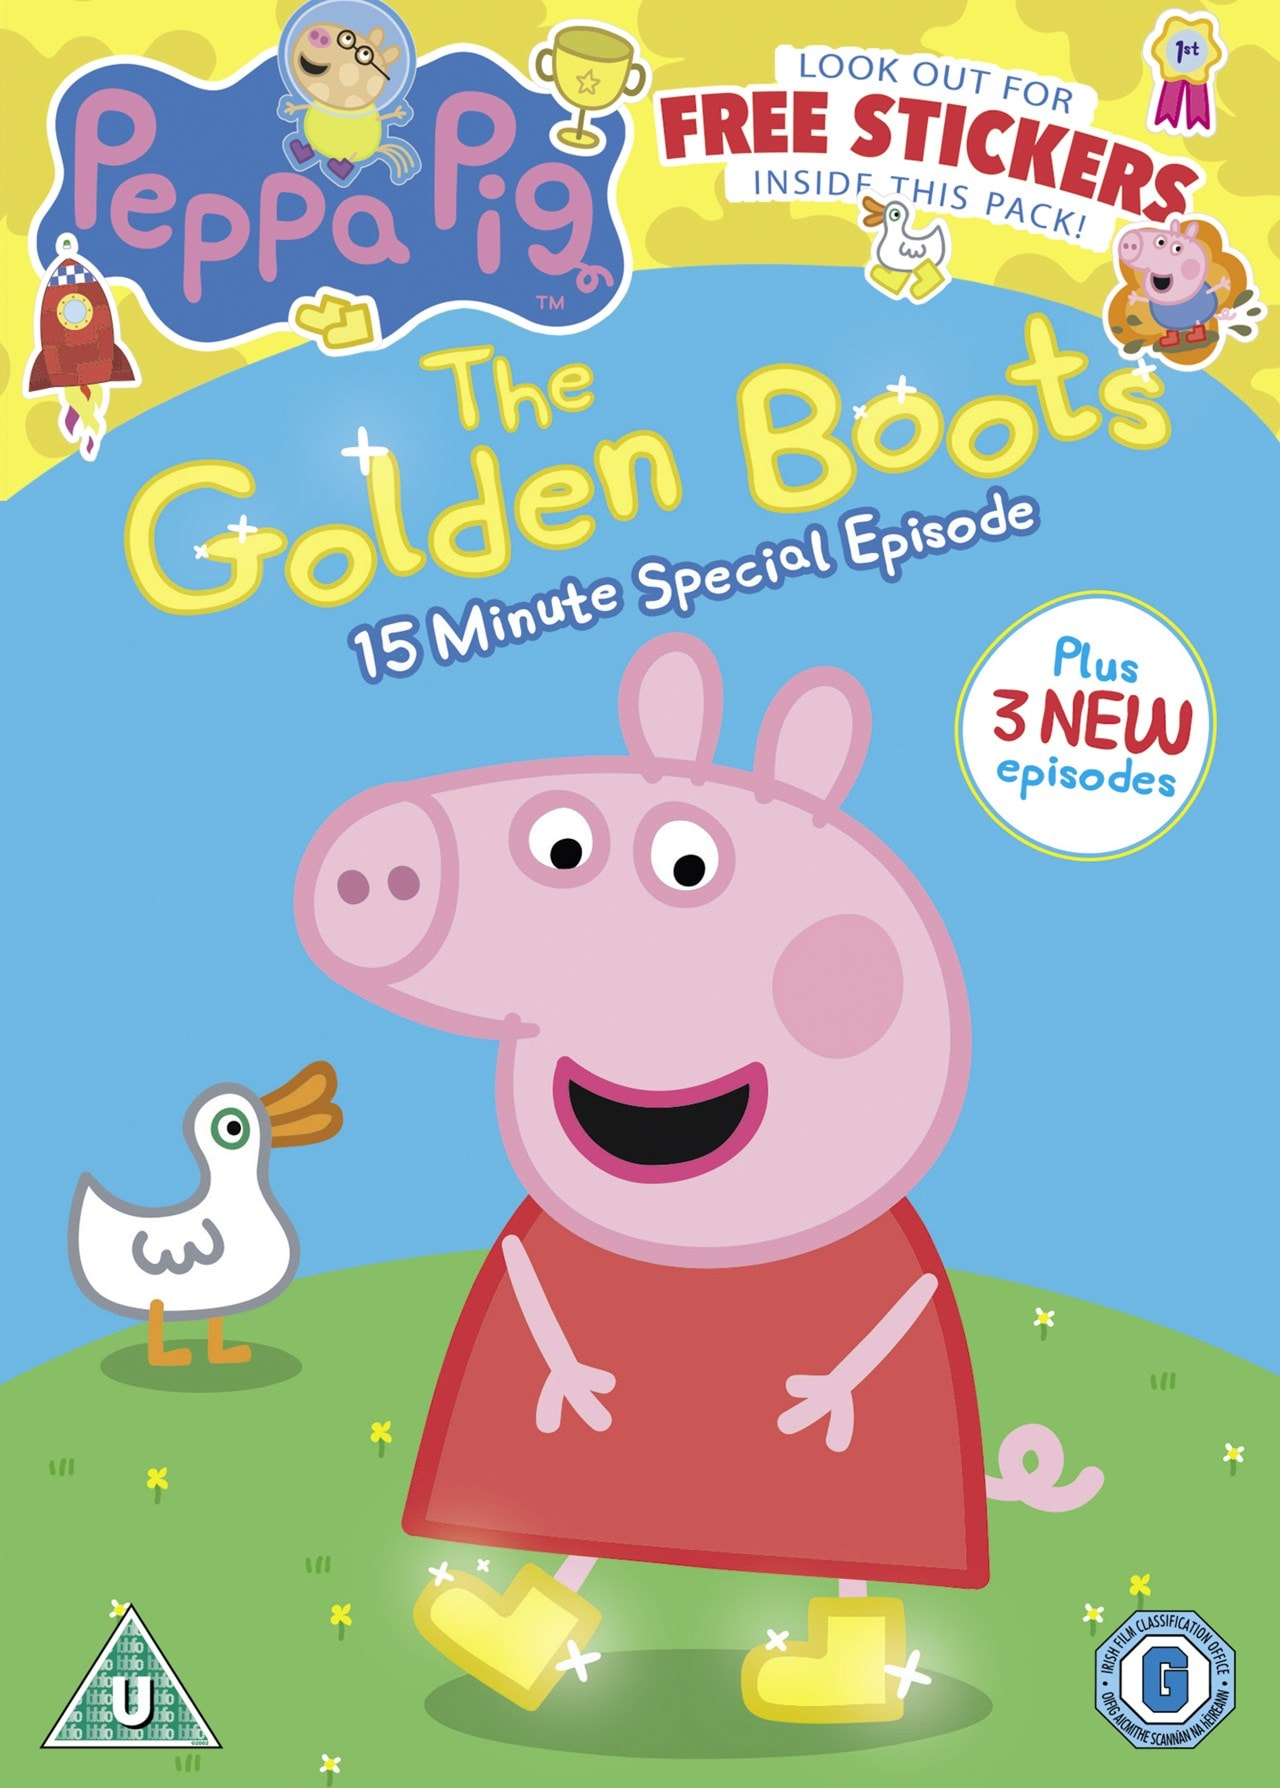 Peppa Pig: The Golden Boots - 1